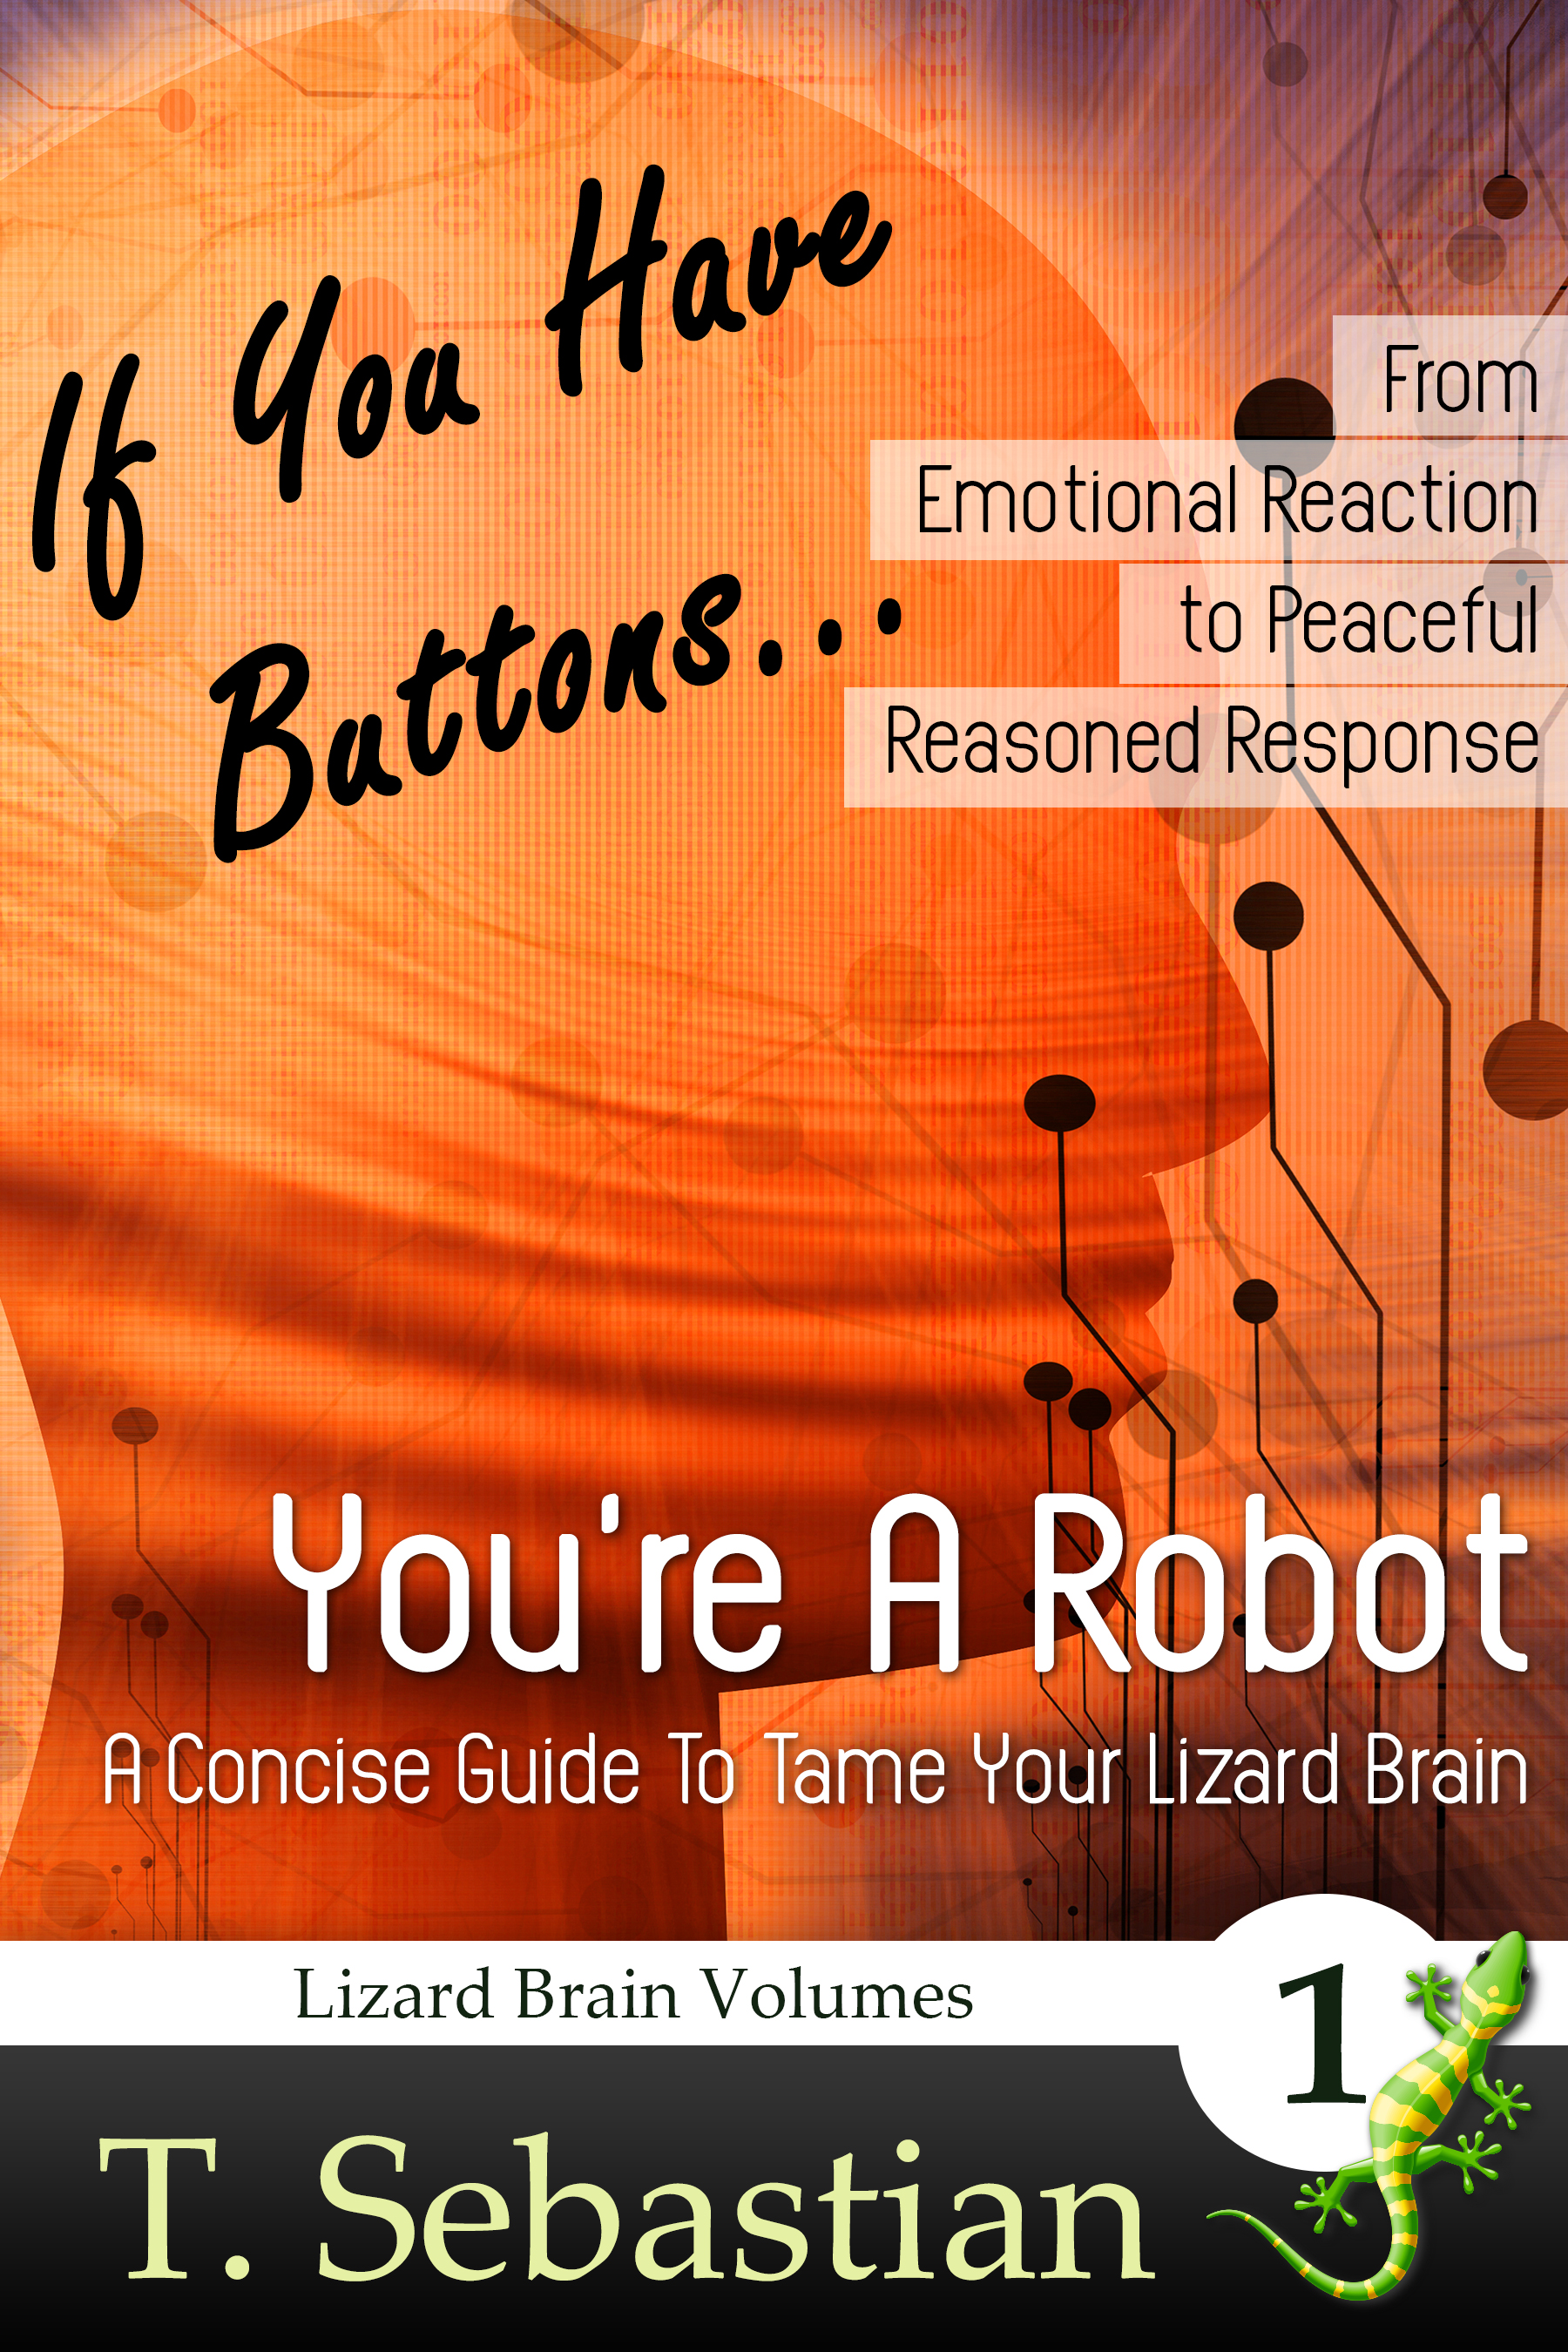 If You Have Buttons You're A Robot EBook